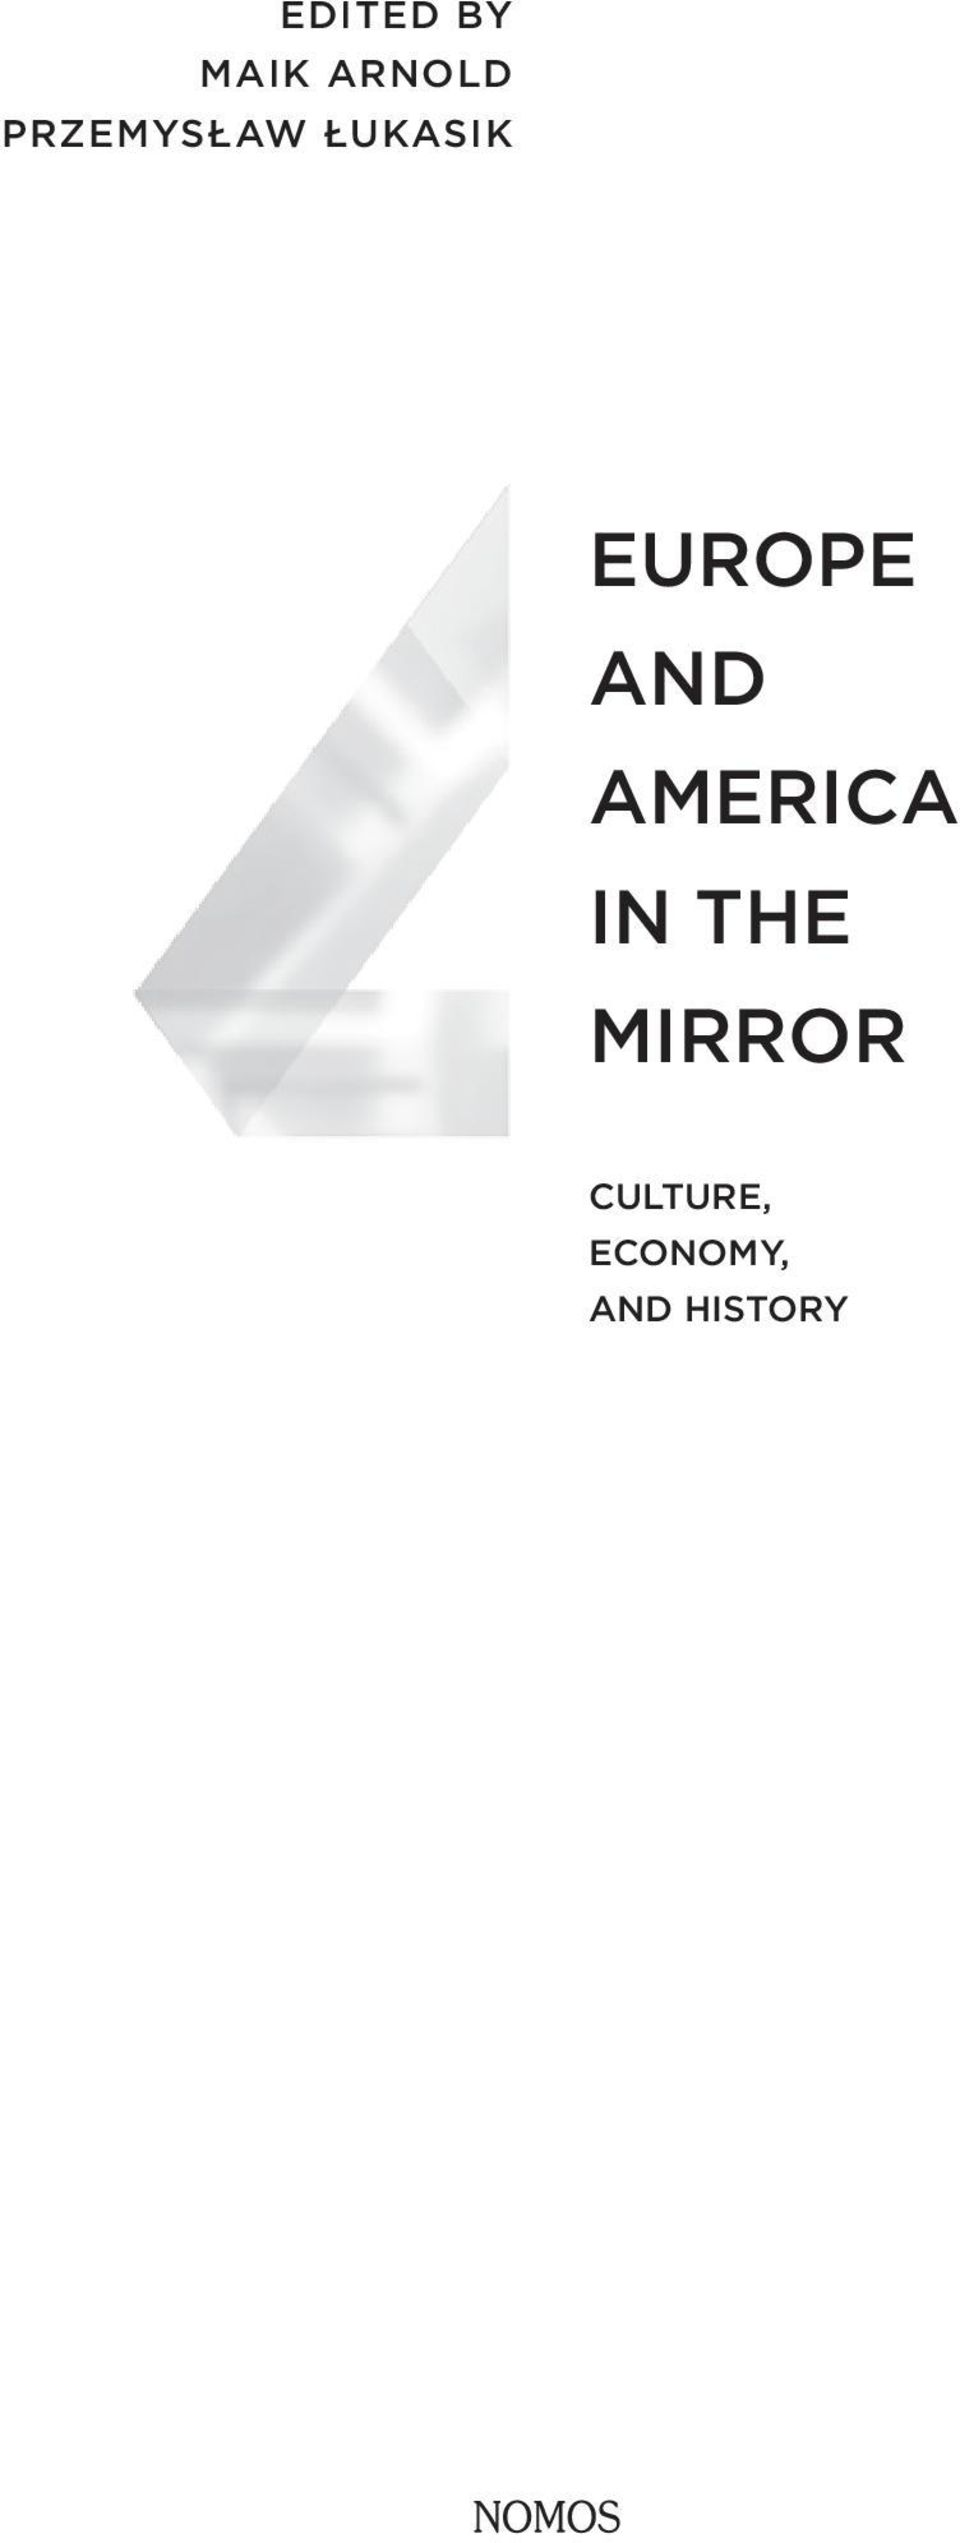 AND AMERICA IN THE MIRROR